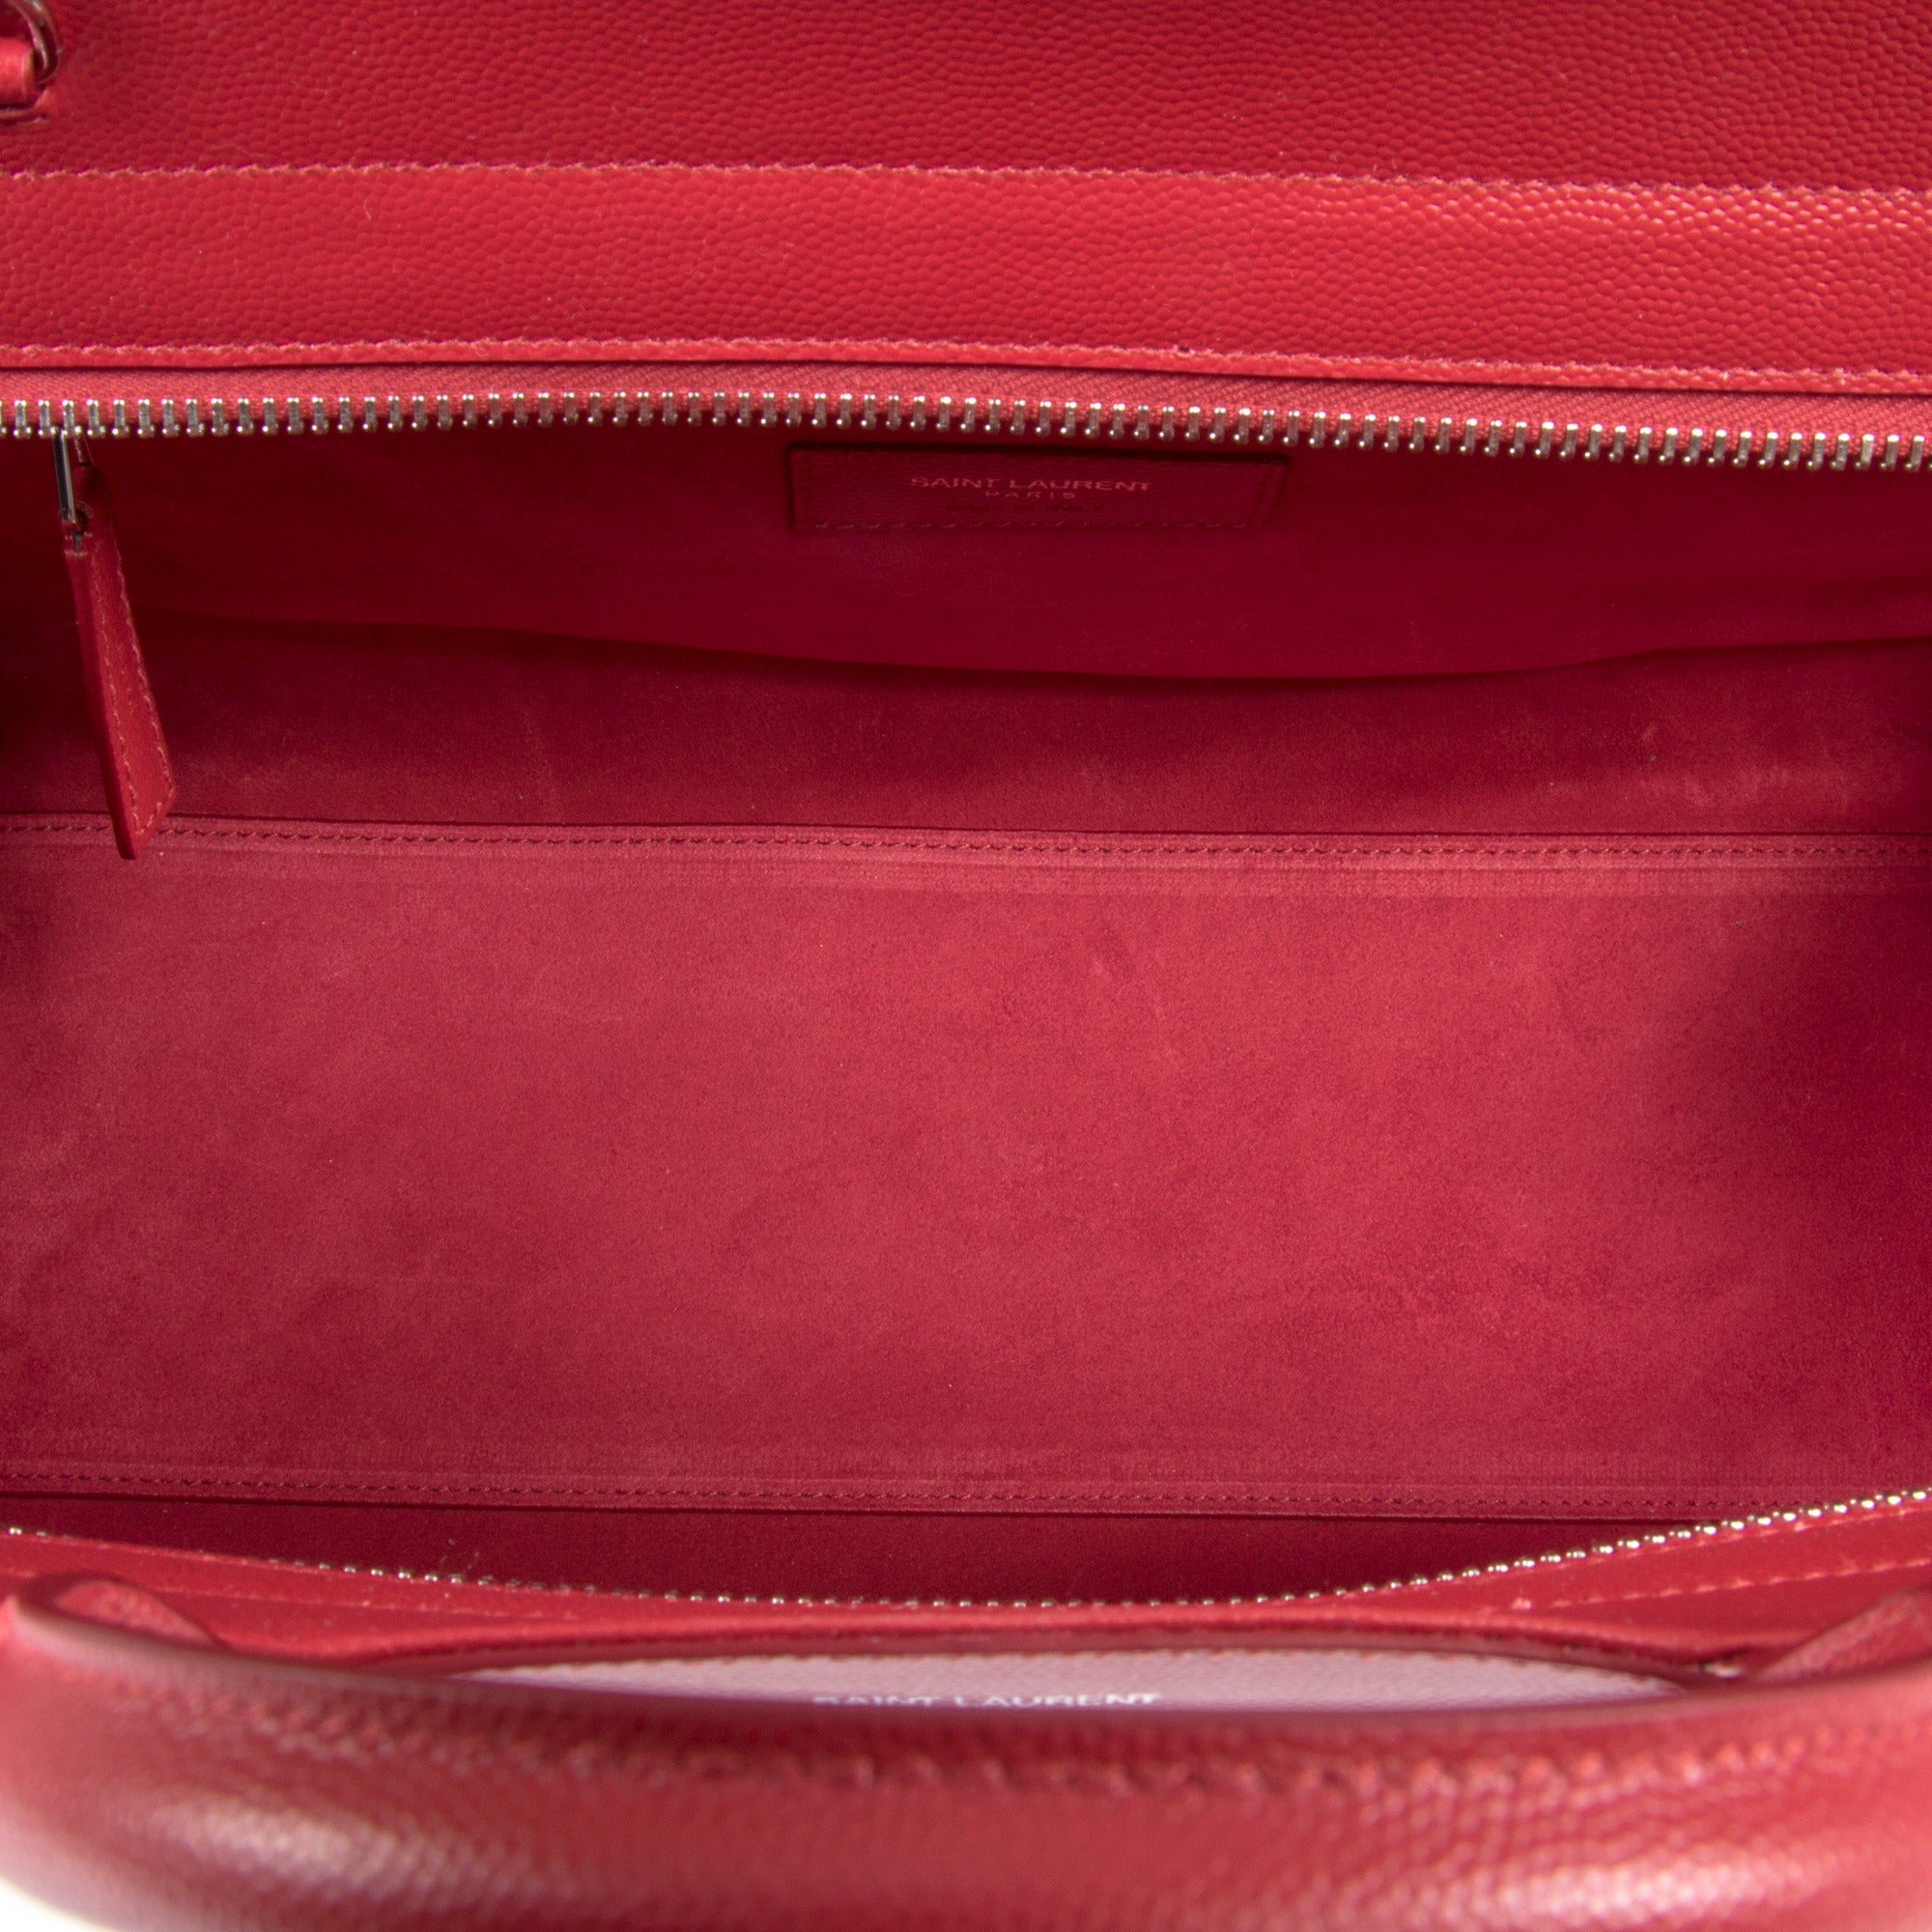 Saint Laurent Cabas Rive Gauche Bag | Red Grained Leather with Silver Hardware | Small